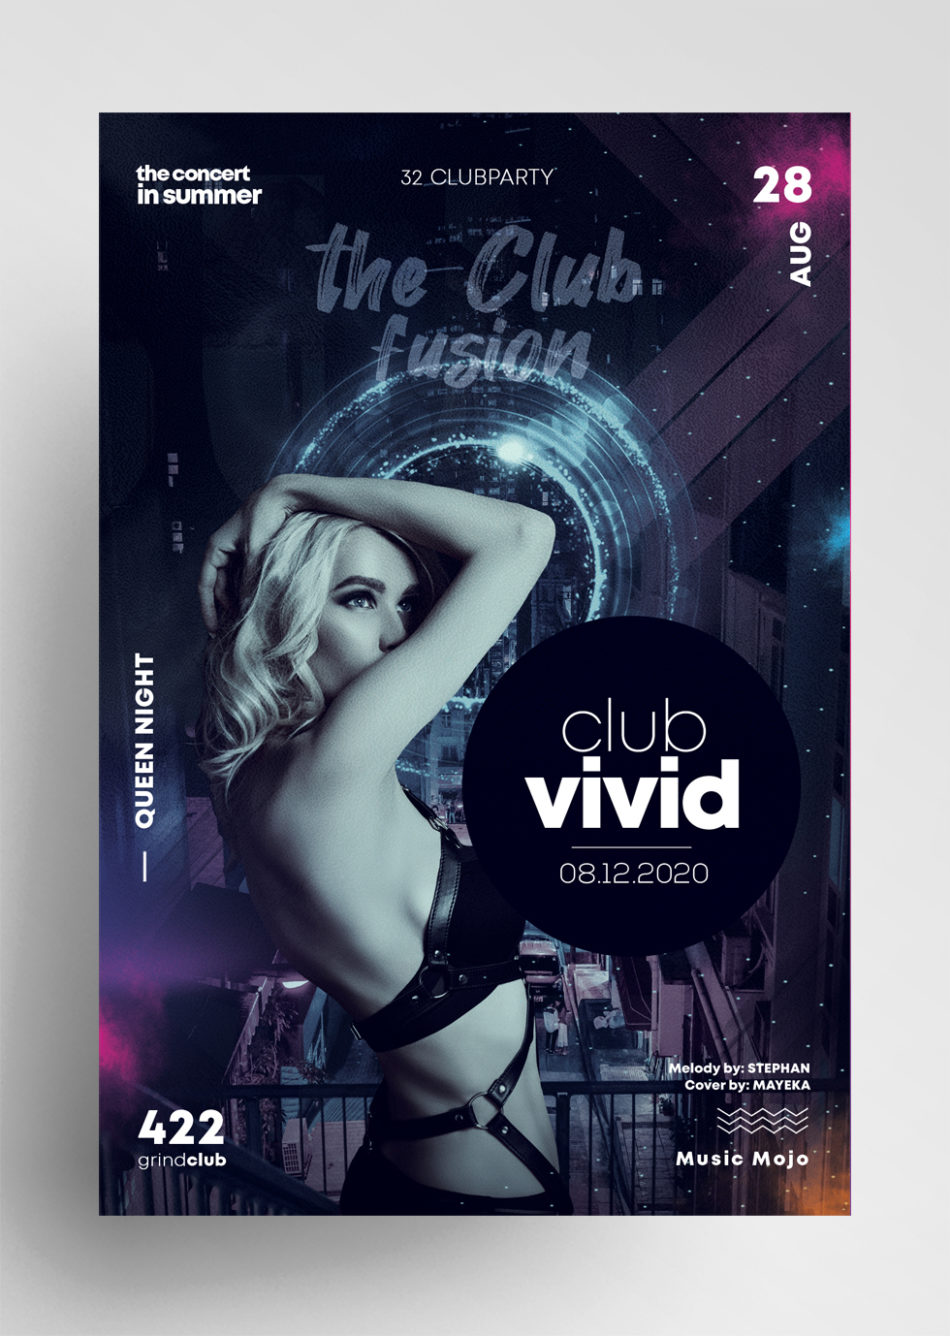 Free Club Vivid Flyer Template in PSD